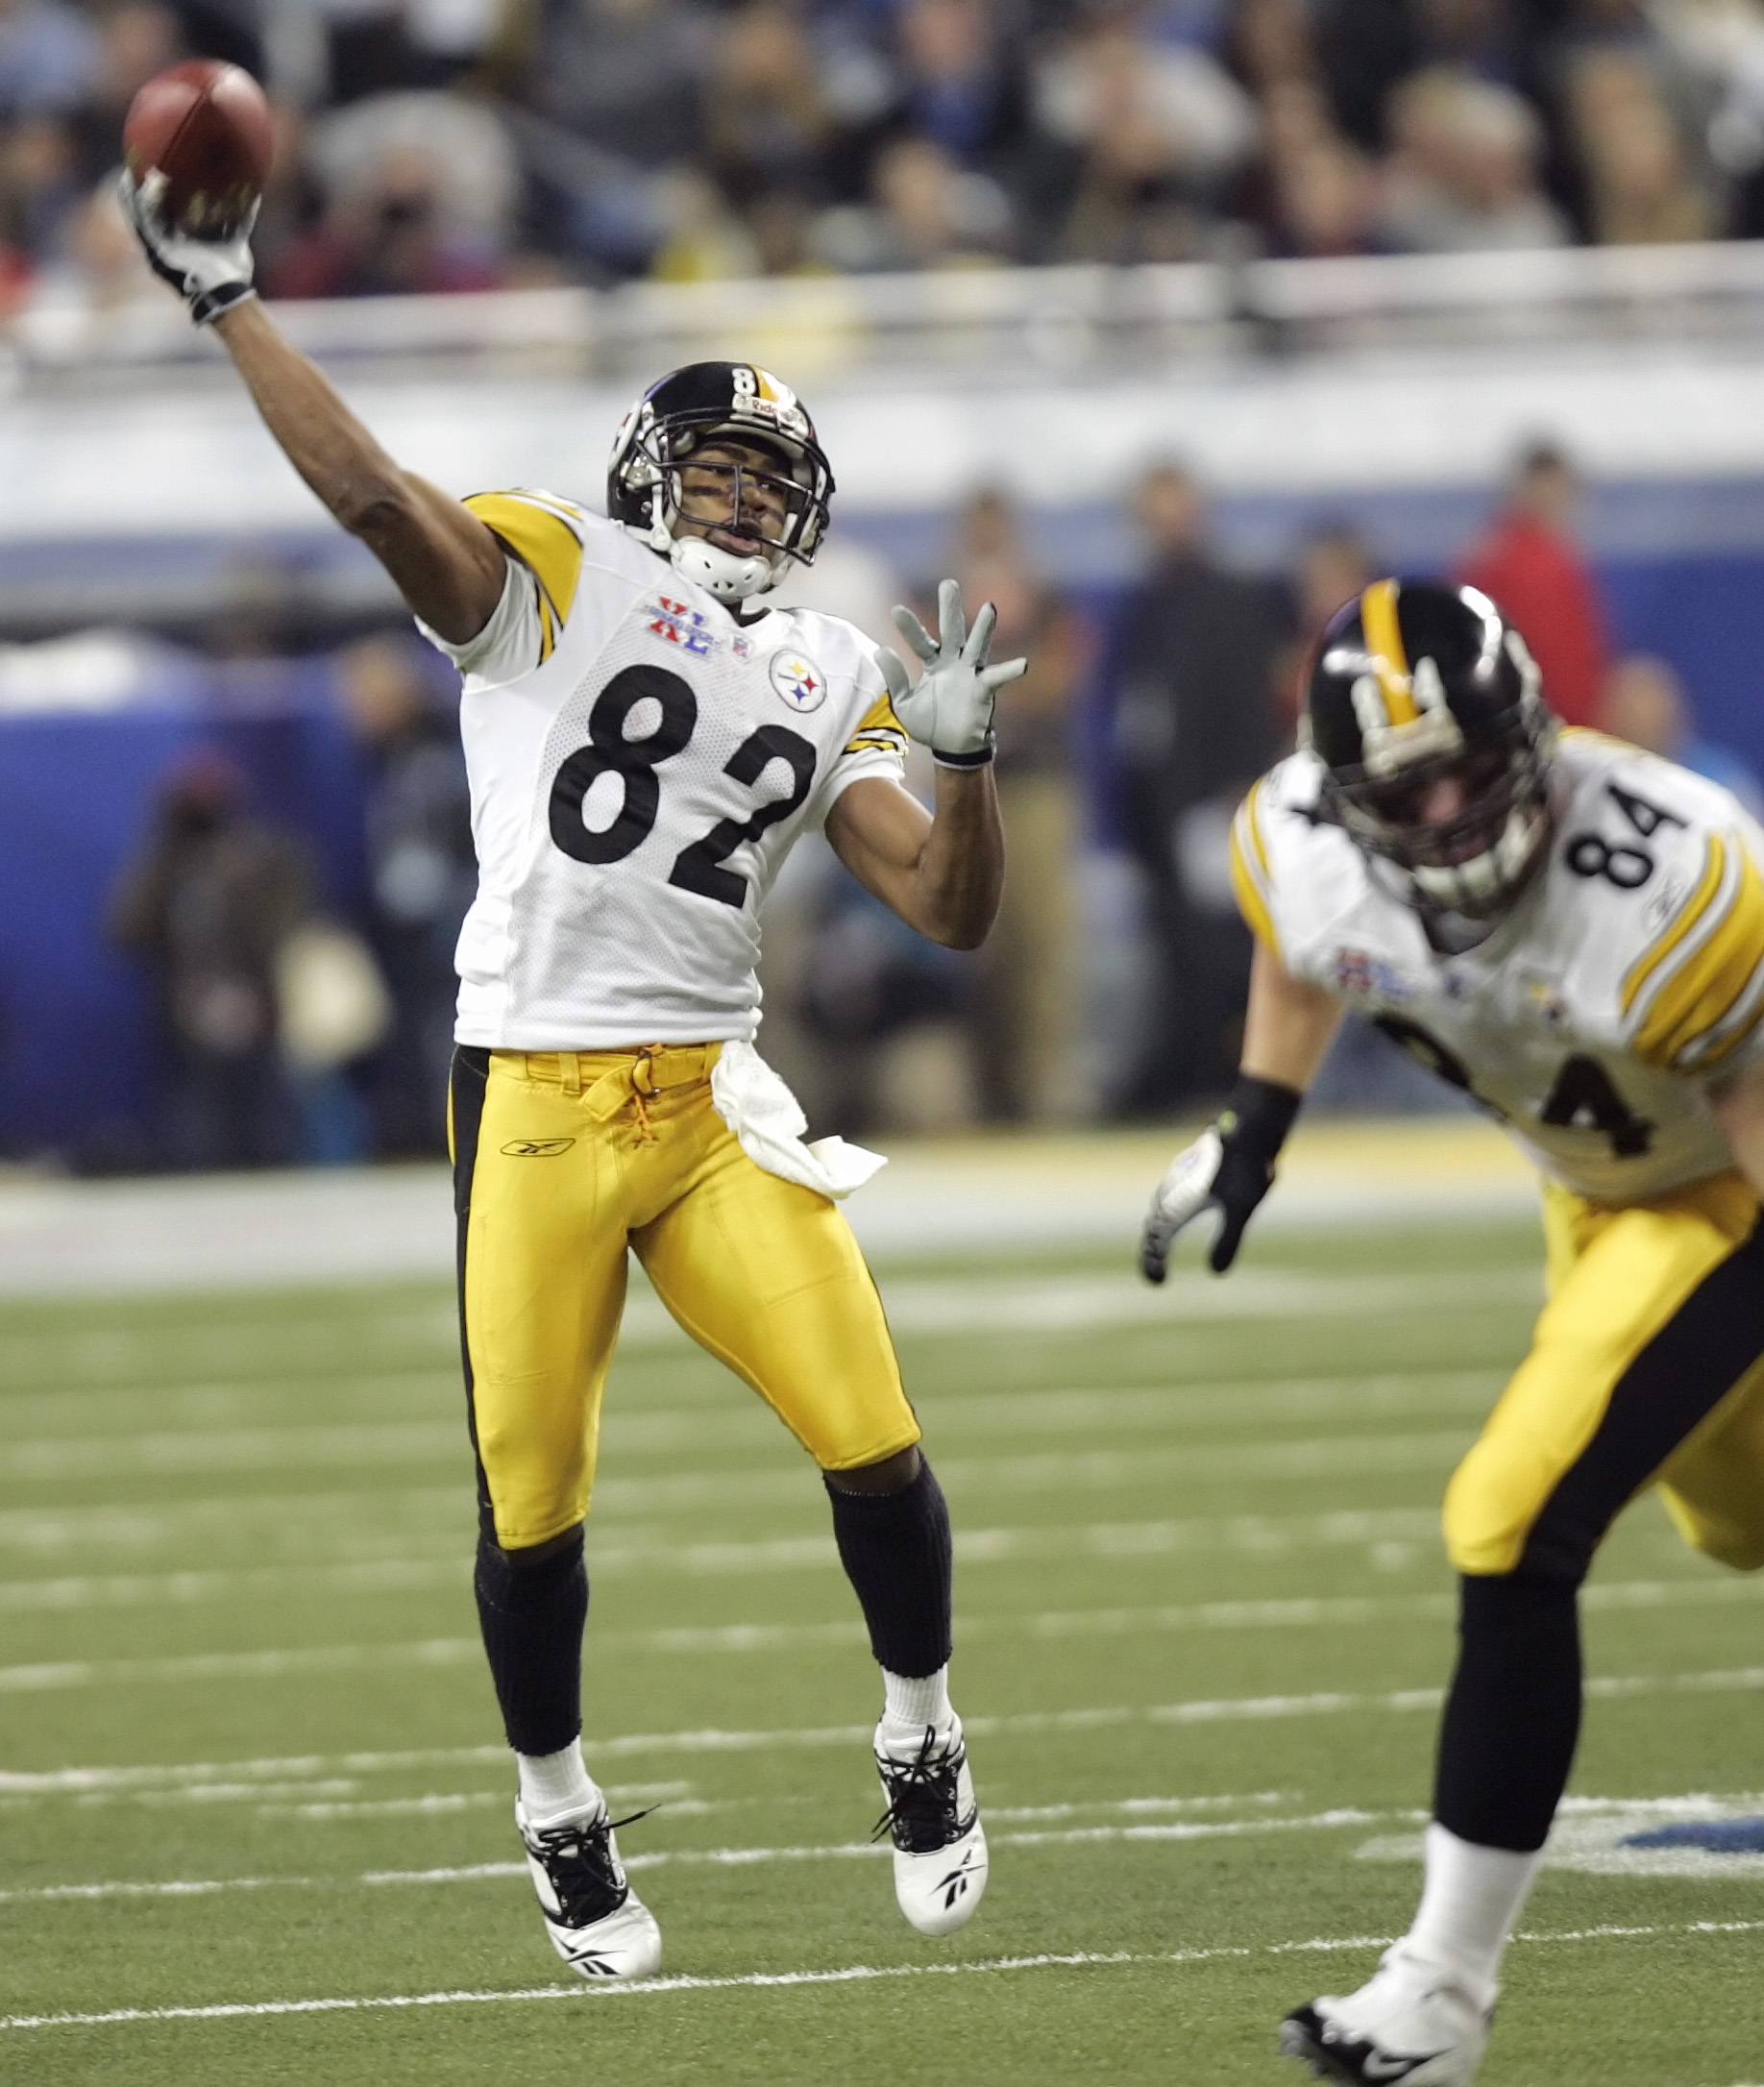 FILE - In this Feb. 5, 2006, file photo, Pittsburgh Steelers wide receiver Antwaan Randle El throws a 43-yard touchdown pass to Hines Ward against the Seattle Seahawks during the Super Bowl XL NFL football game in Detroit. The play is one of the memorable